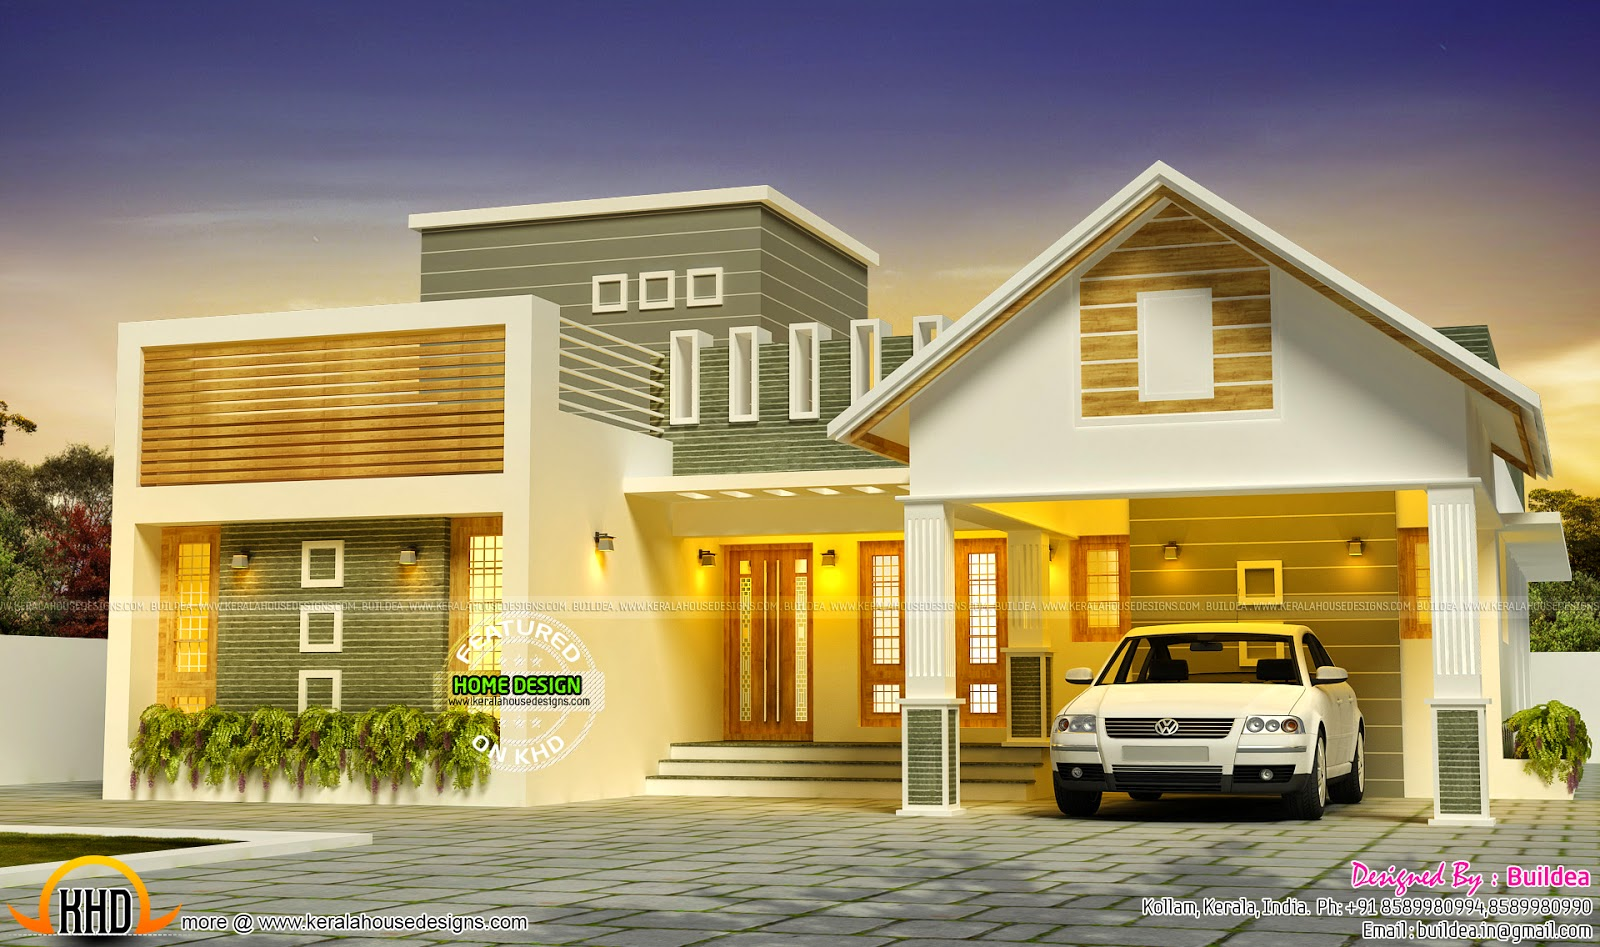 Awesome dream home design kerala home design and floor plans for Dream home design